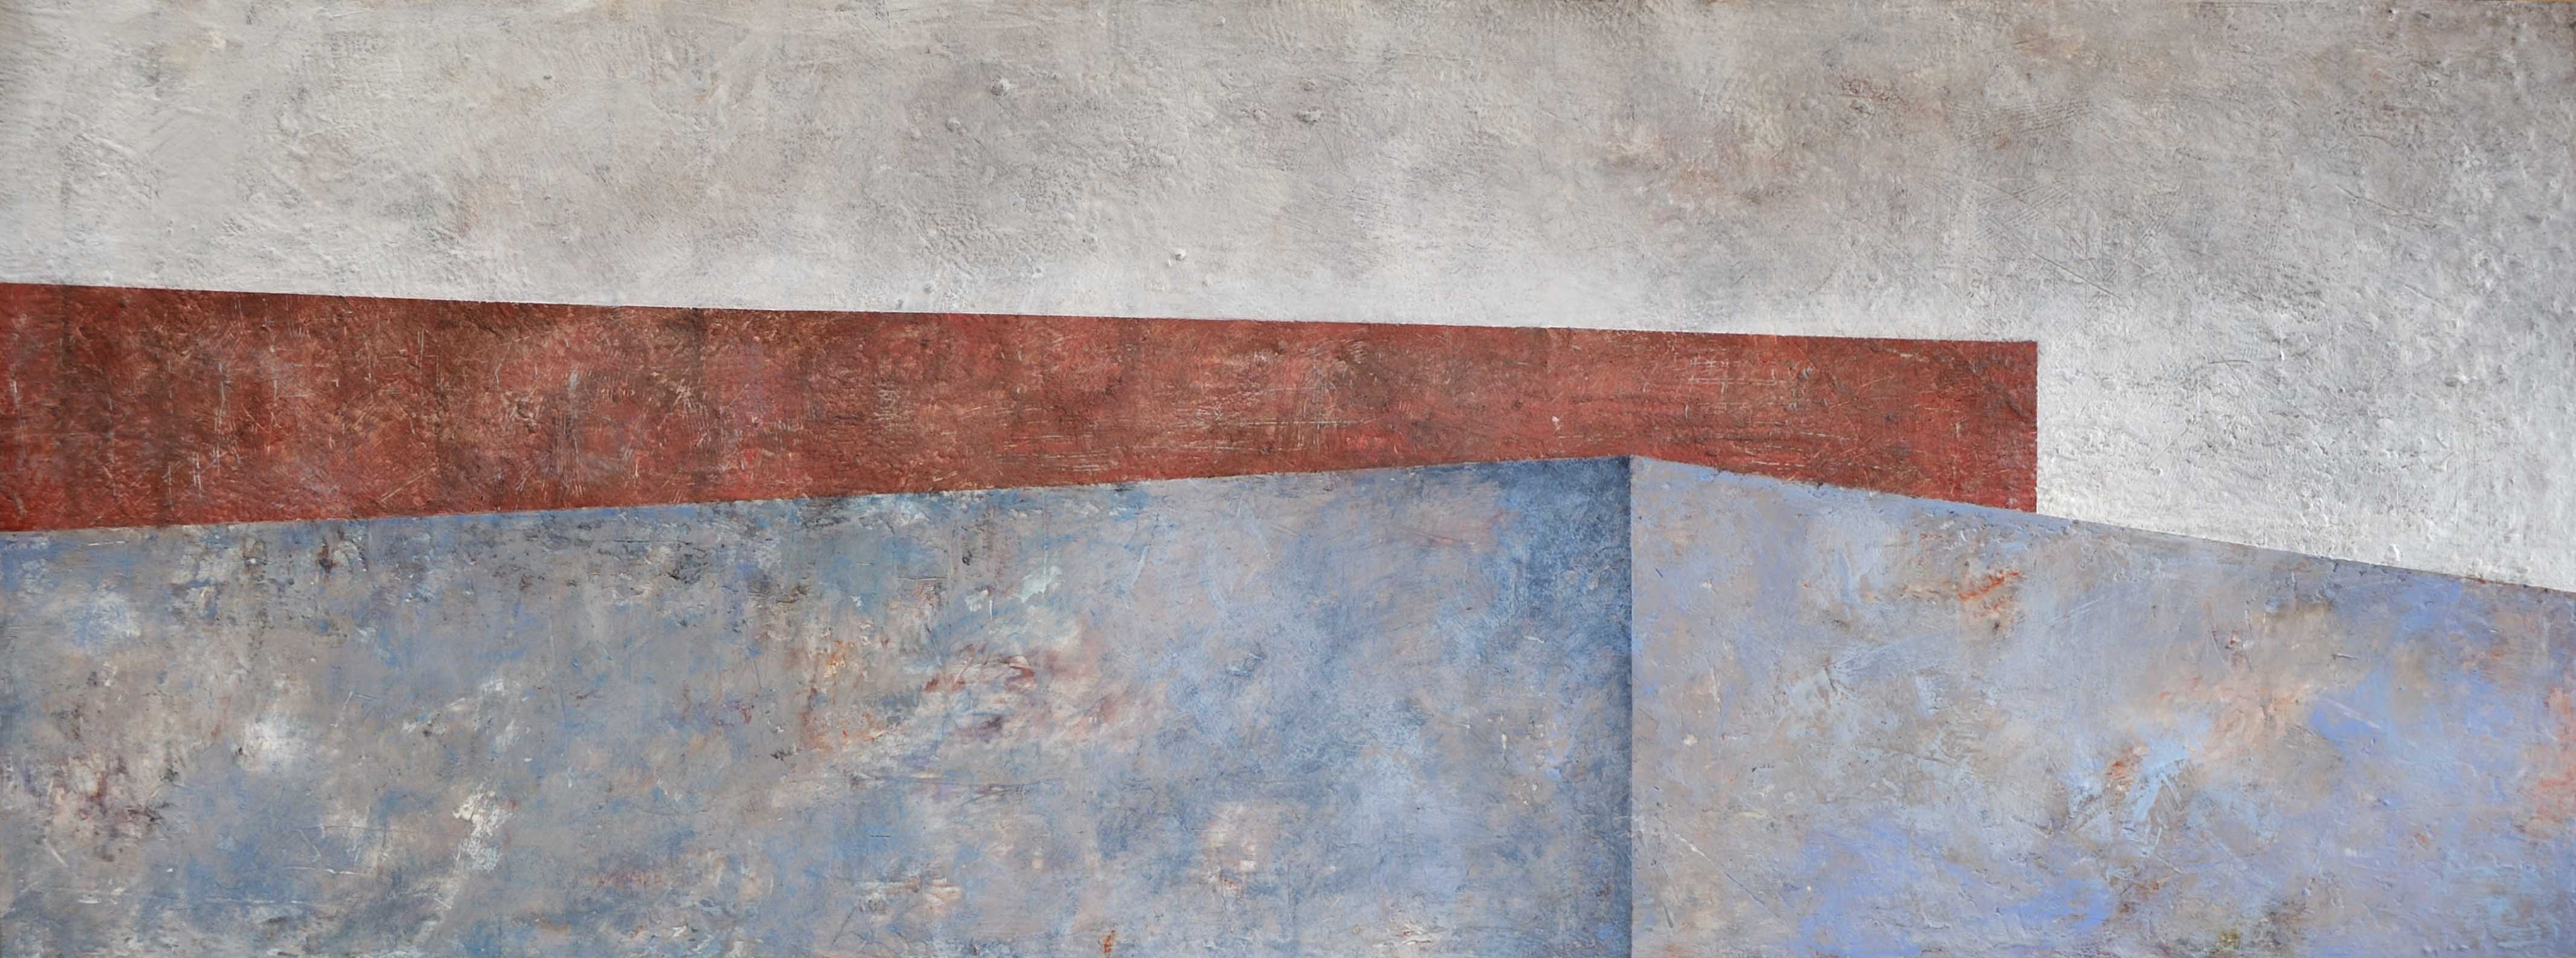 A Longing For Balance - Georgia Nassikas - encaustic on gallery board 30x80